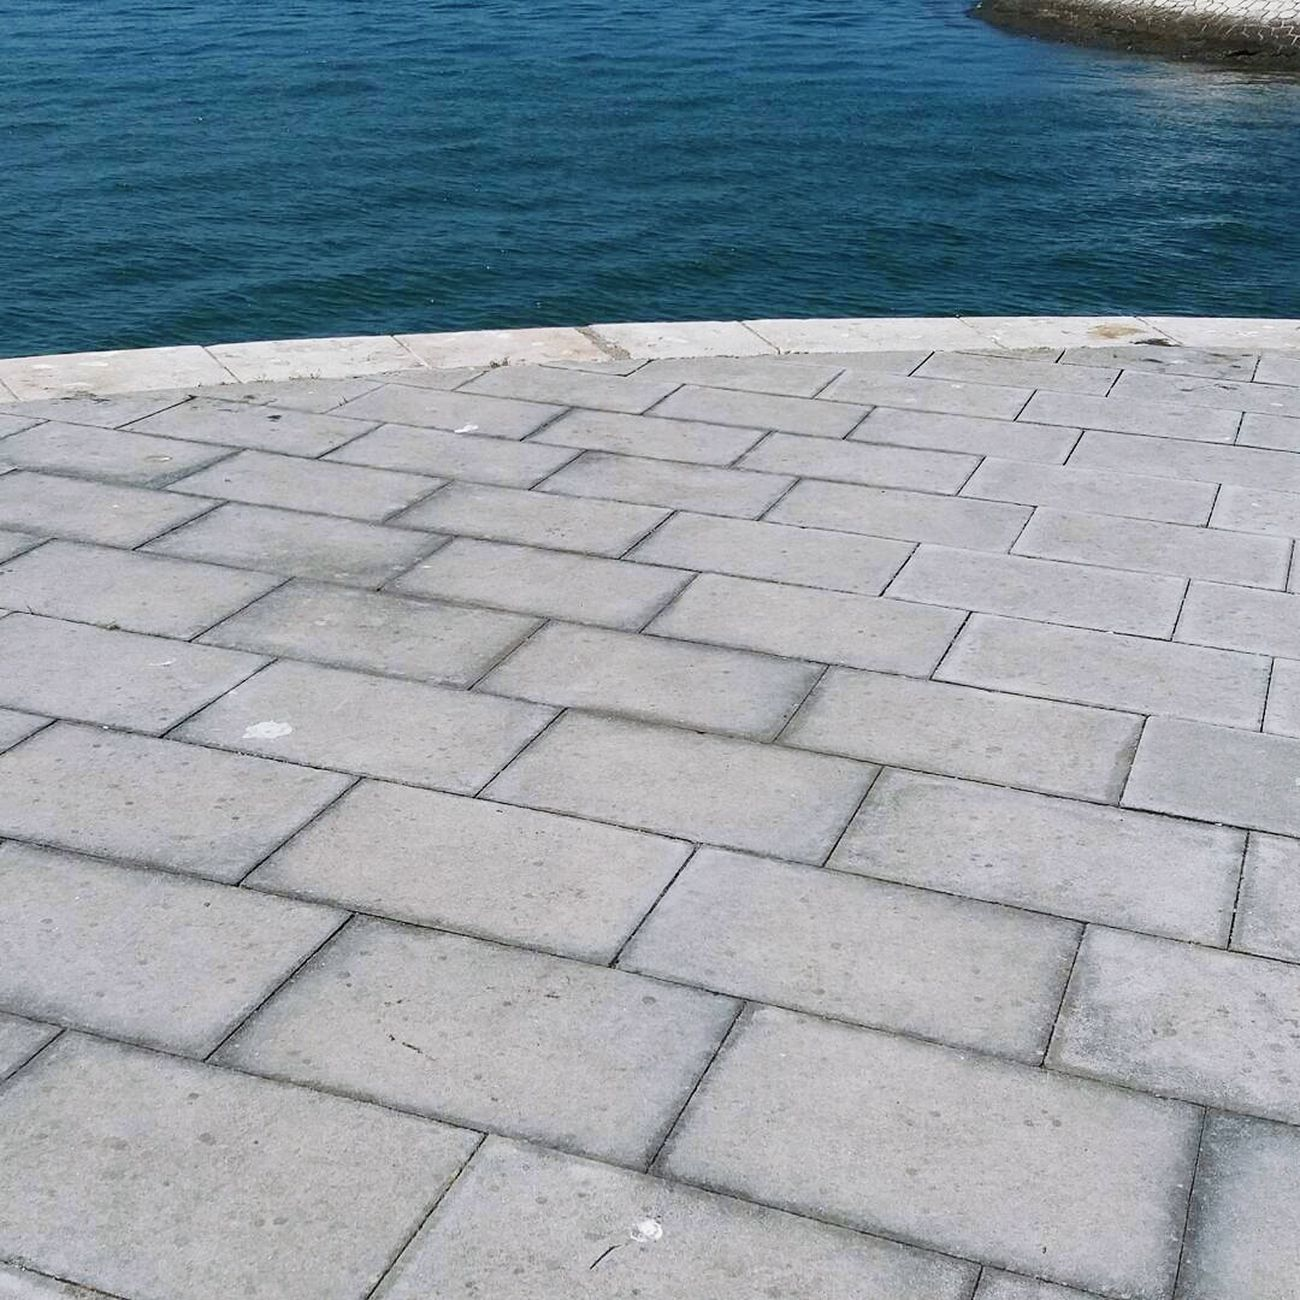 Perspectives in blue Water Asphalt Casual Photography City Lines And Shapes Lines, Shapes And Curves Geometric Shape Belém, Lisboa Belem Portugal Photographing Streetphotography Casualphotography Photography Paving Stone Famous Tourist Attractions Scenics Clear Sky Calm Travel Destinations Belém Marina Tranquility Day Boat Nautical Vessel